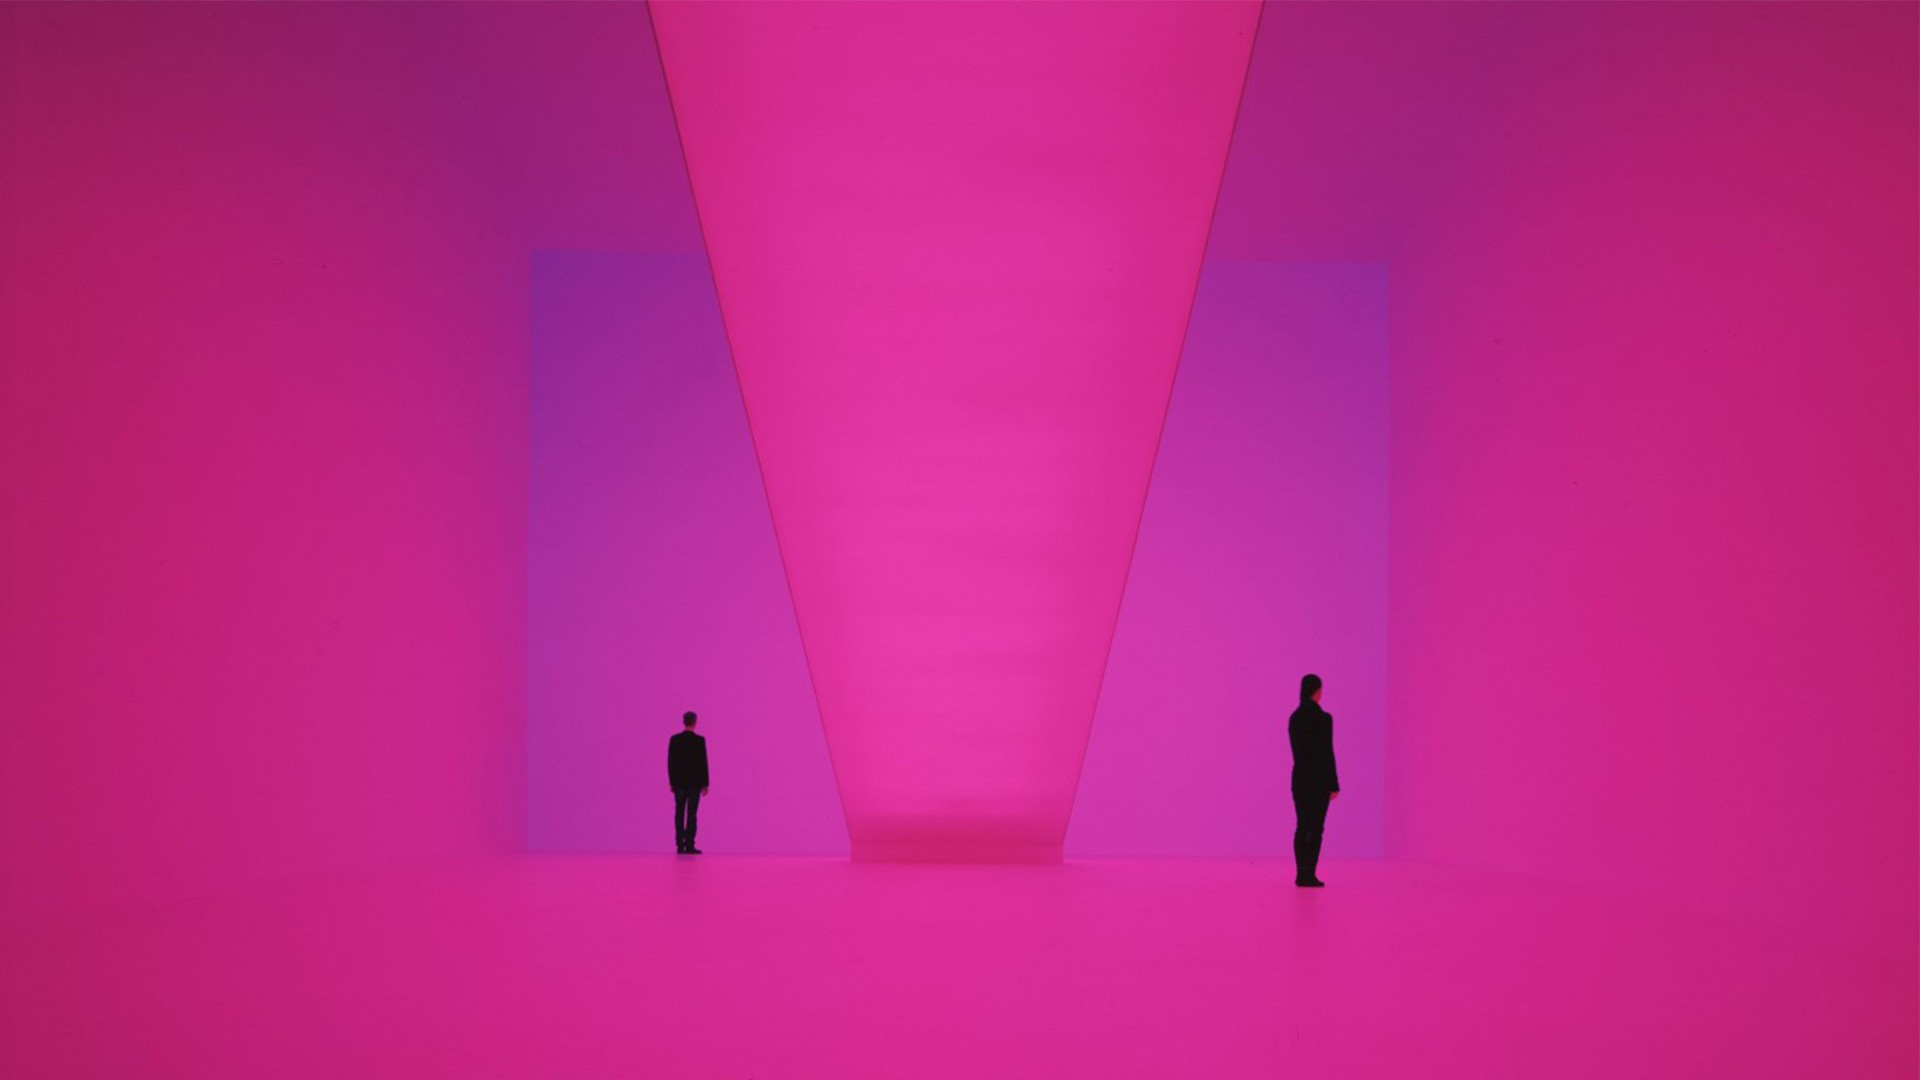 Introducing James Turrell Light Art Design Nulty